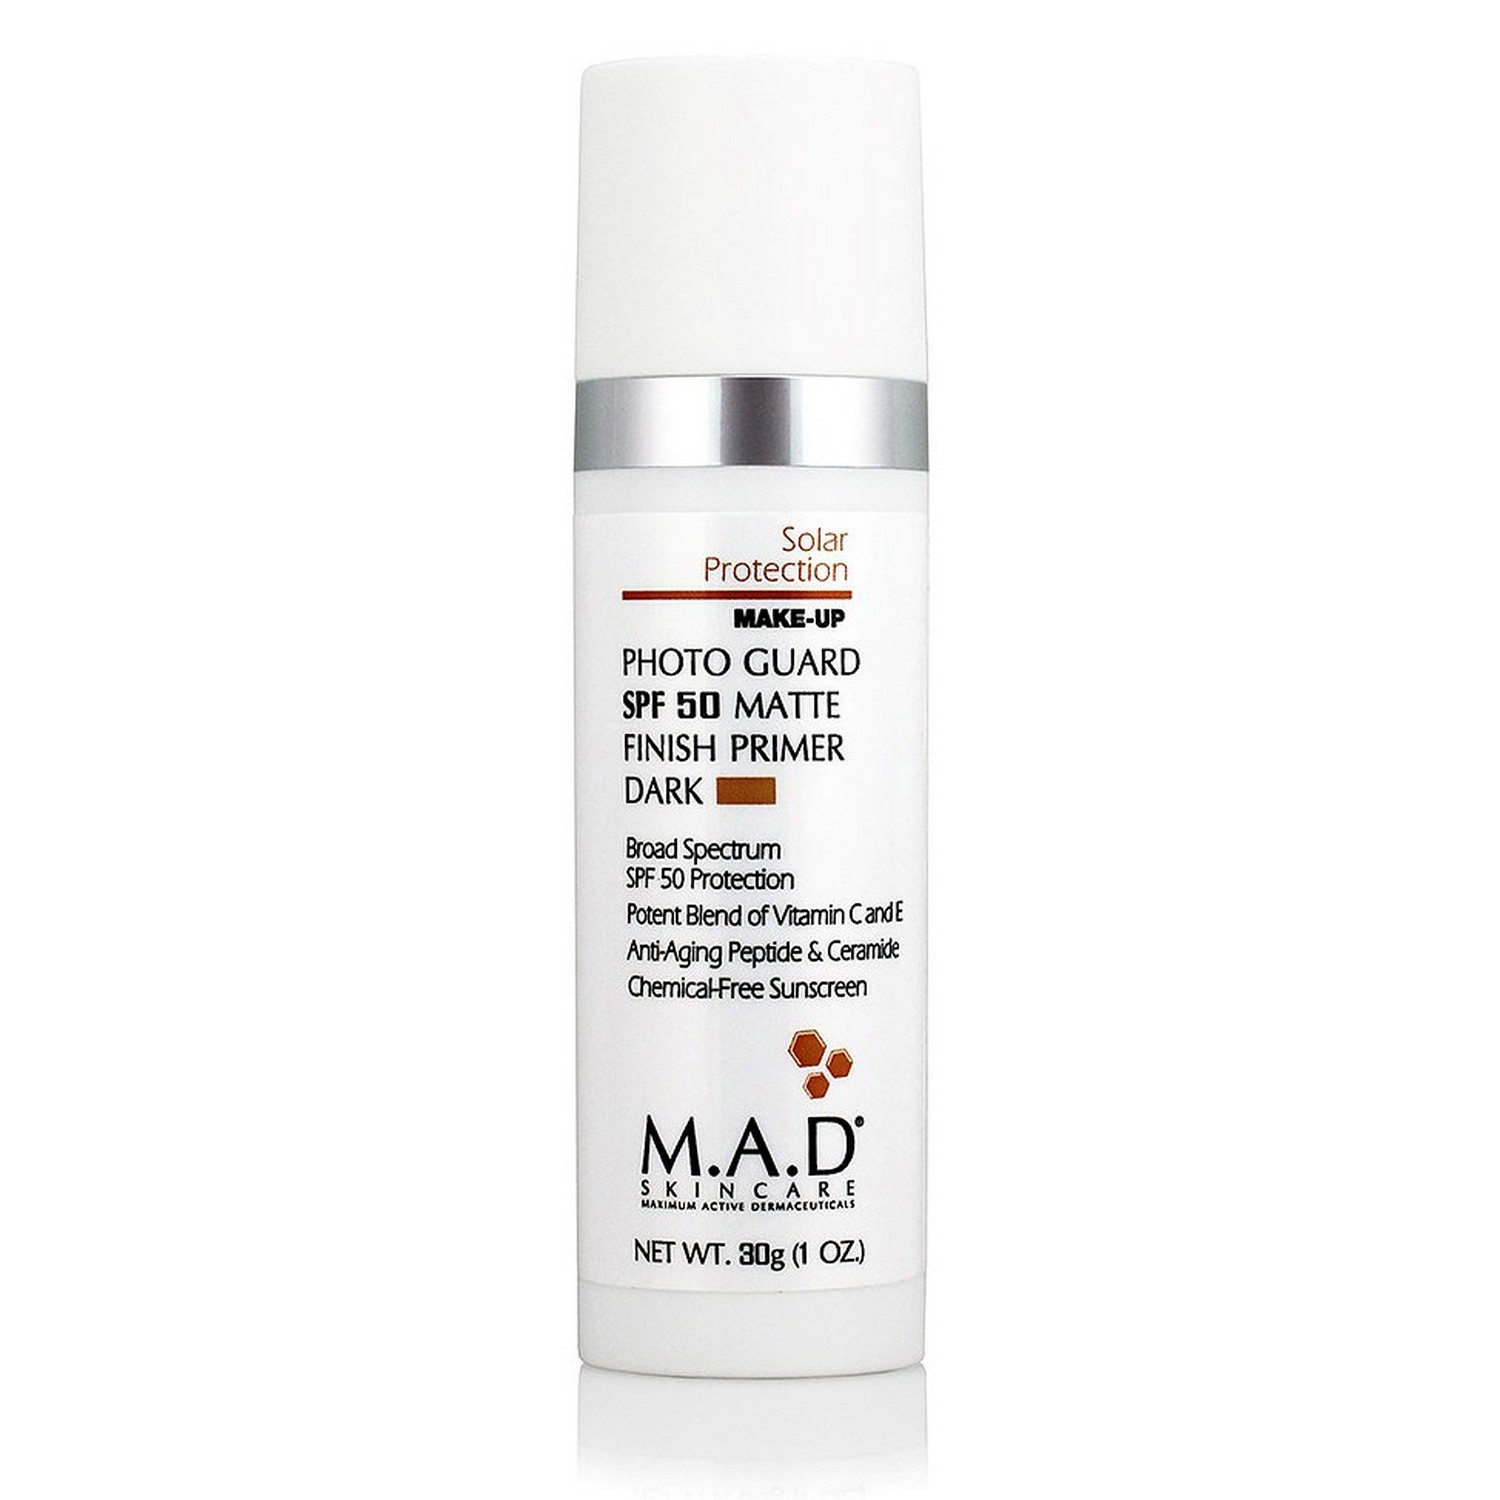 Buy M.A.D SKINCARE PHOTO GUARD SPF 50 MATTE FINISH PRIMER DARK (30 g / 1.0 oz)